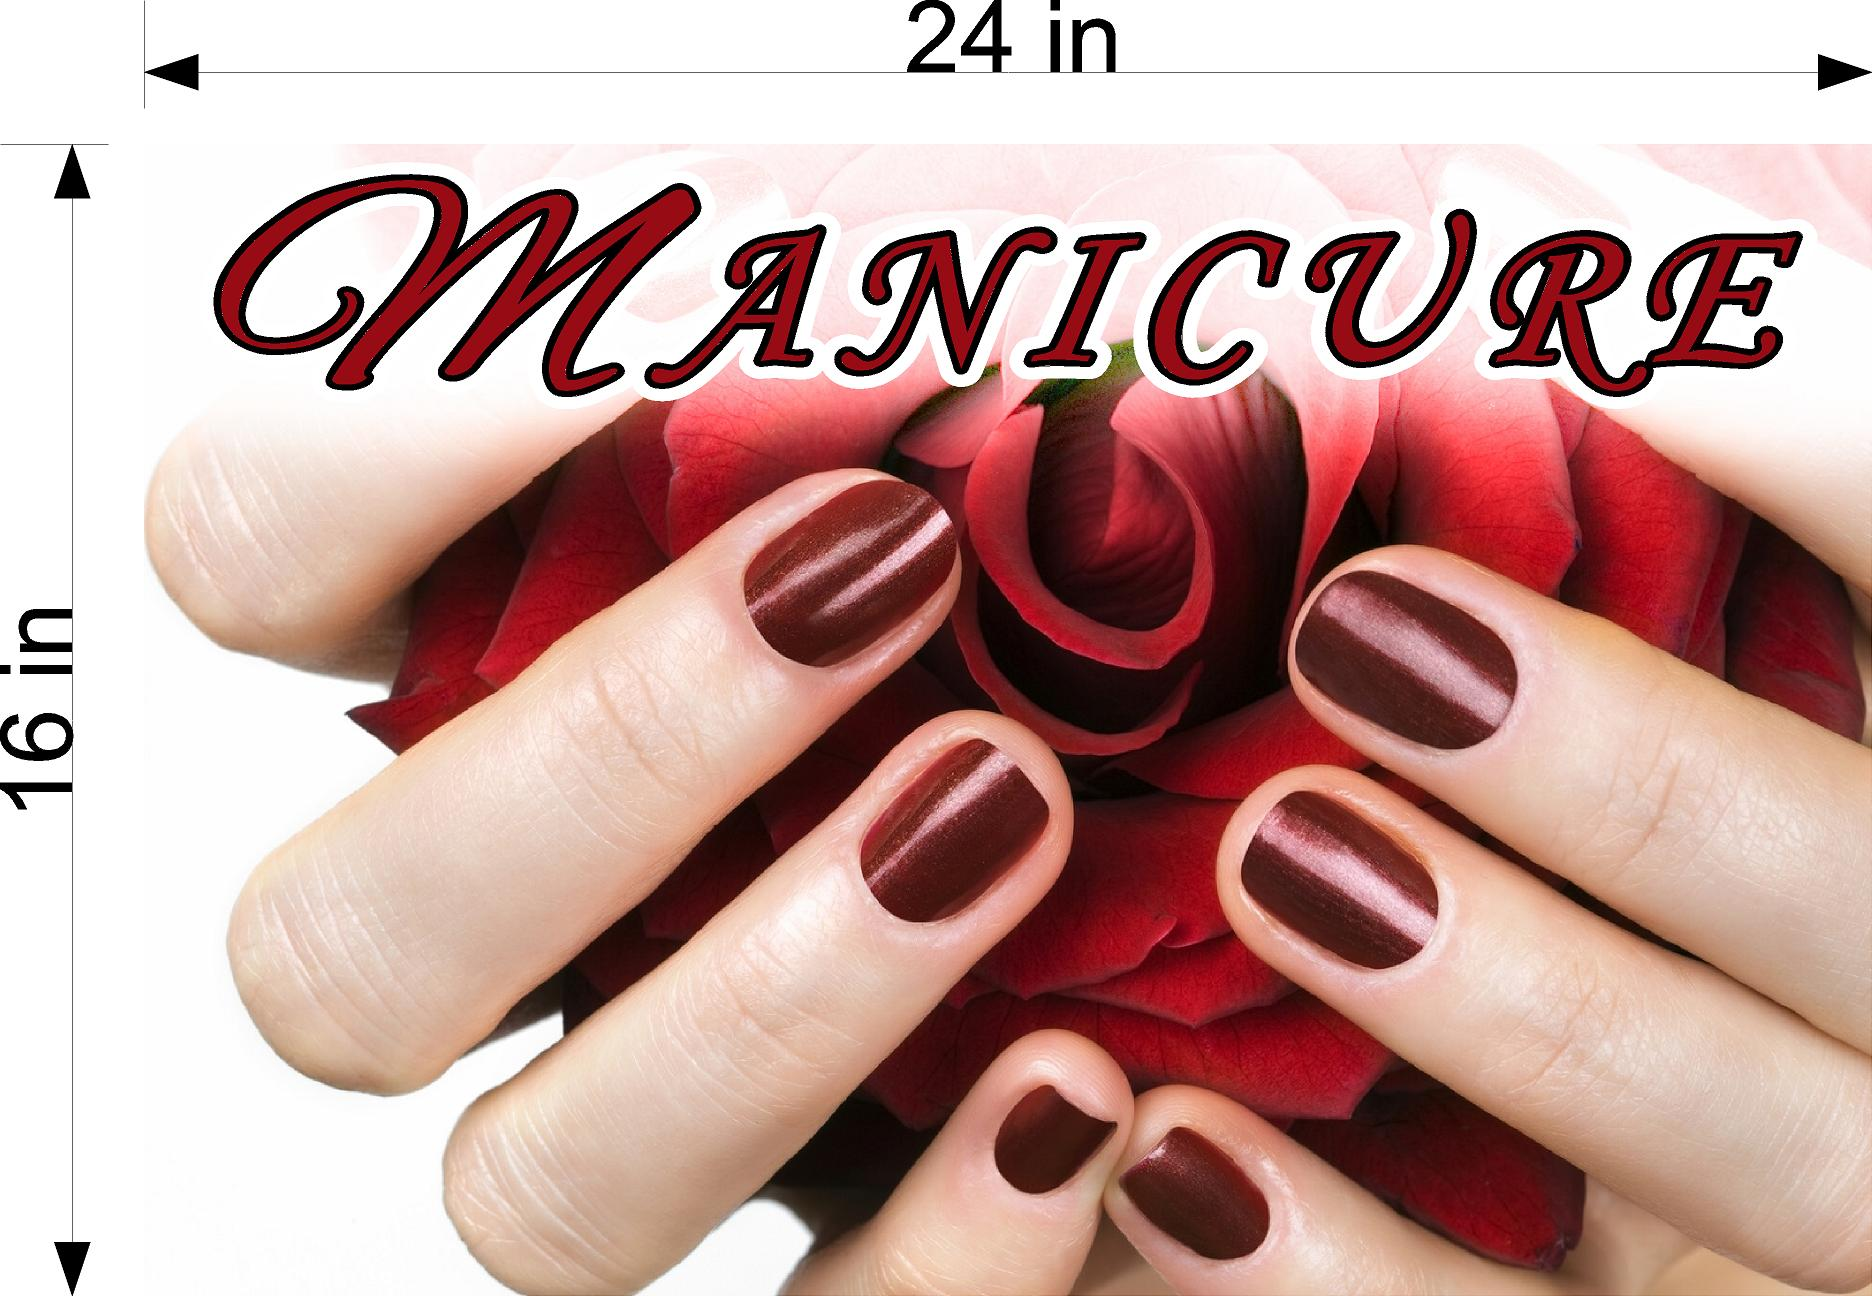 Manicure 24 Perforated Mesh One Way Vision See-Through Window Vinyl Nail Salon Sign Horizontal